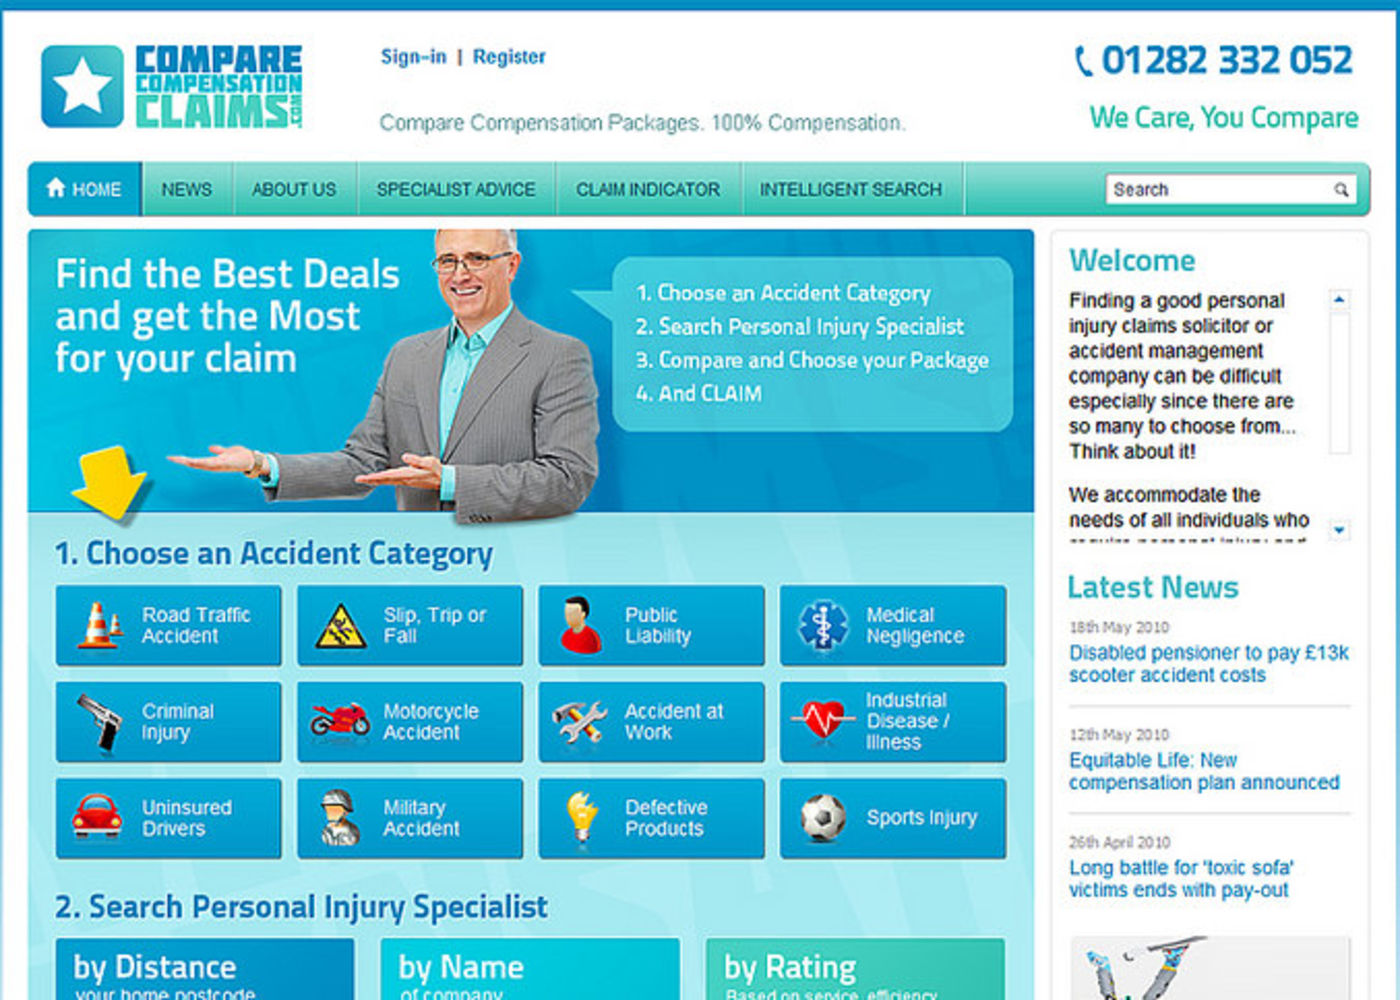 Compare Compensation Claims Homepage page